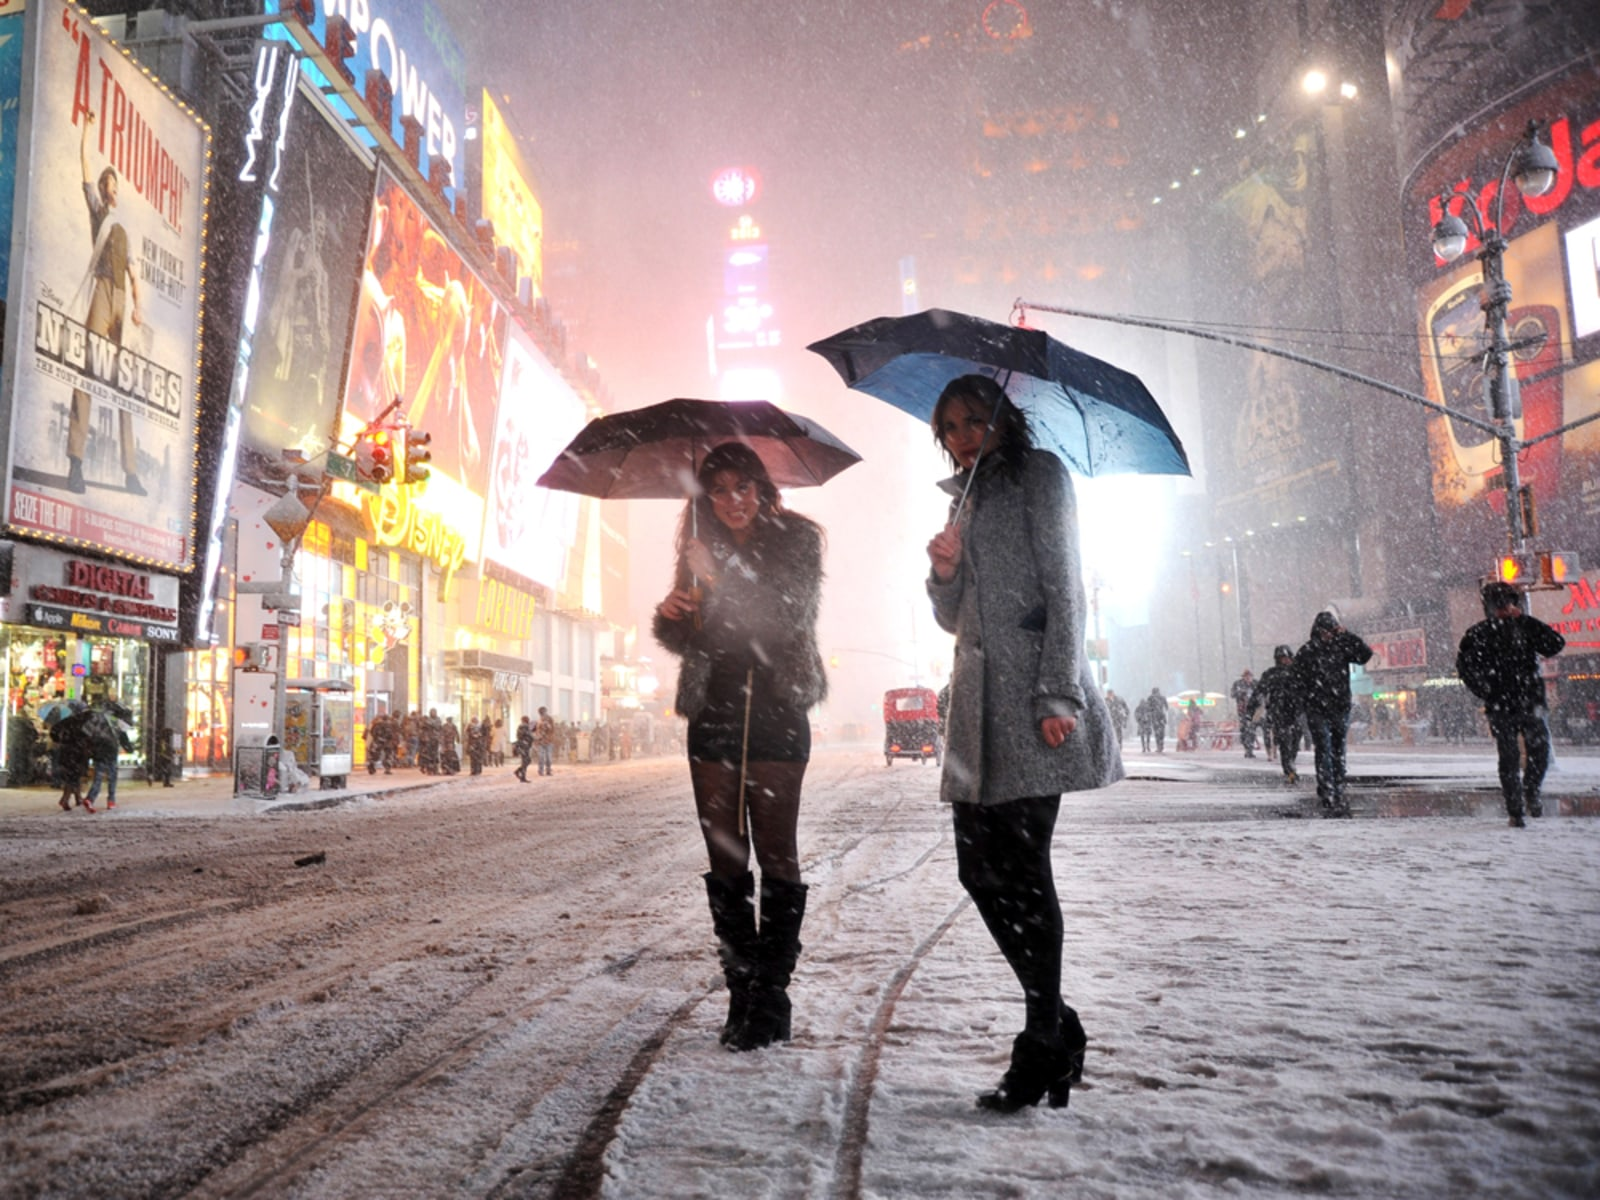 Image: New York City's Times Square during a recent blizzard.